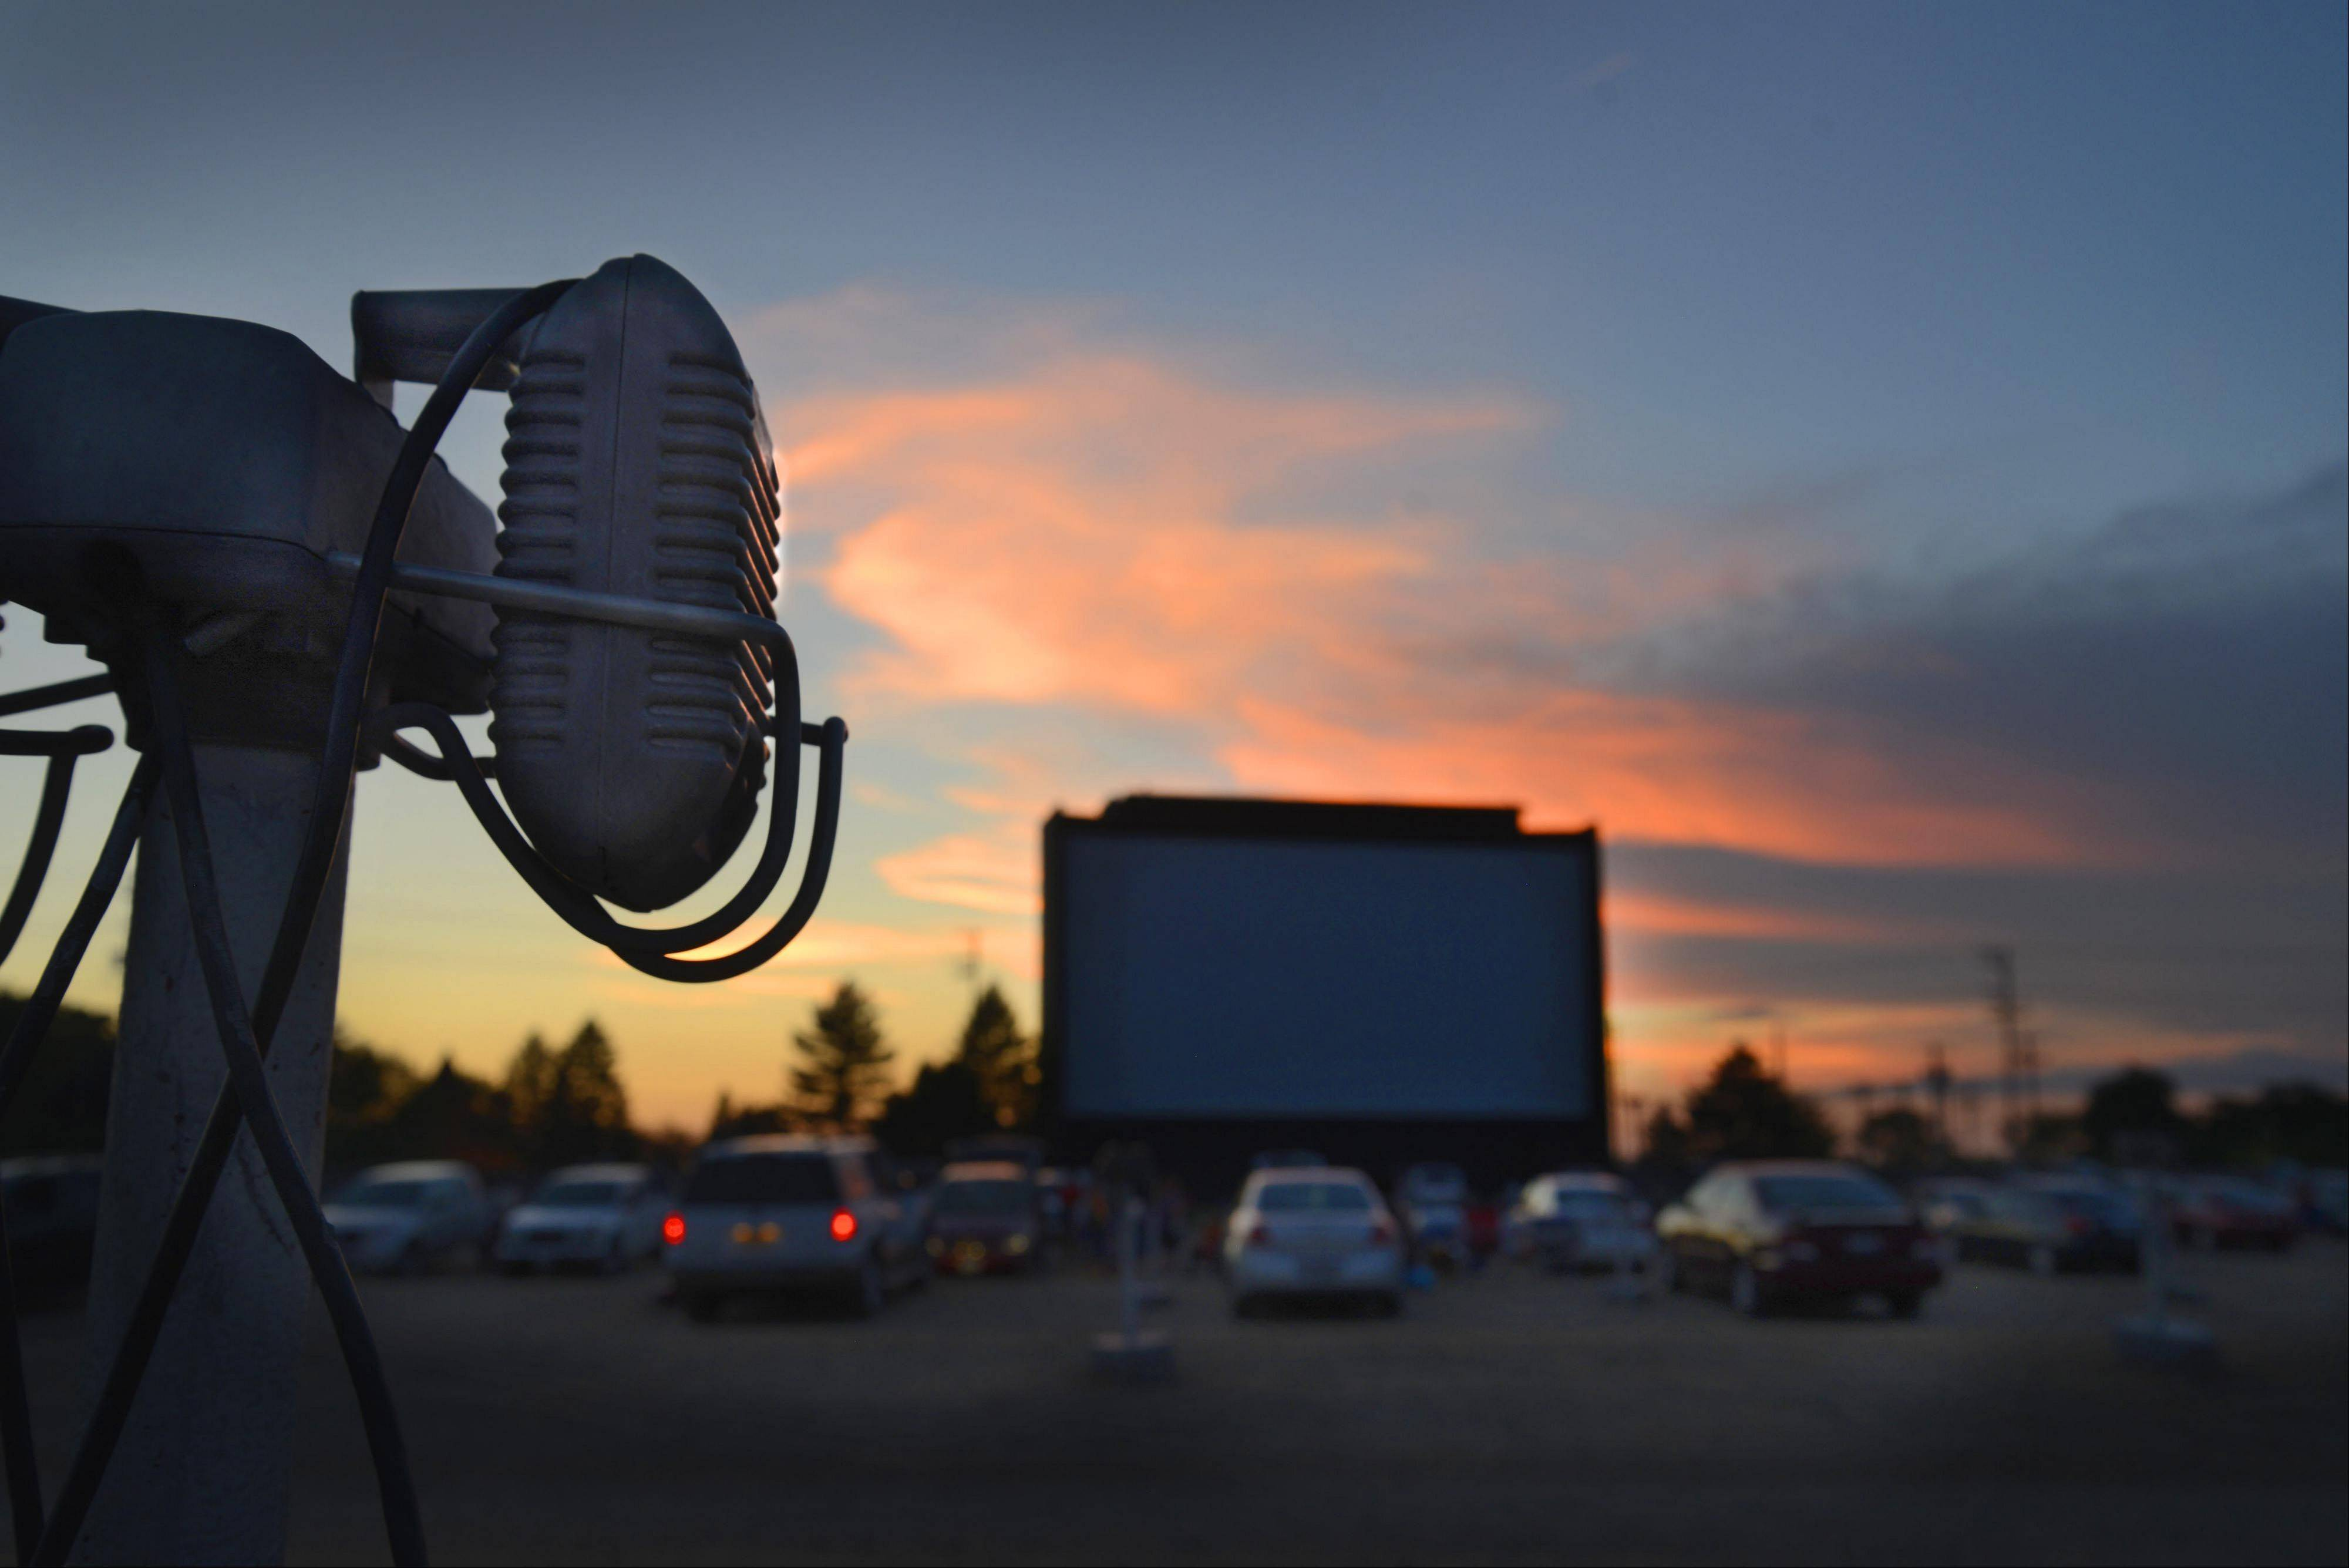 McHenry Outdoor Theater to recieve new digital protector